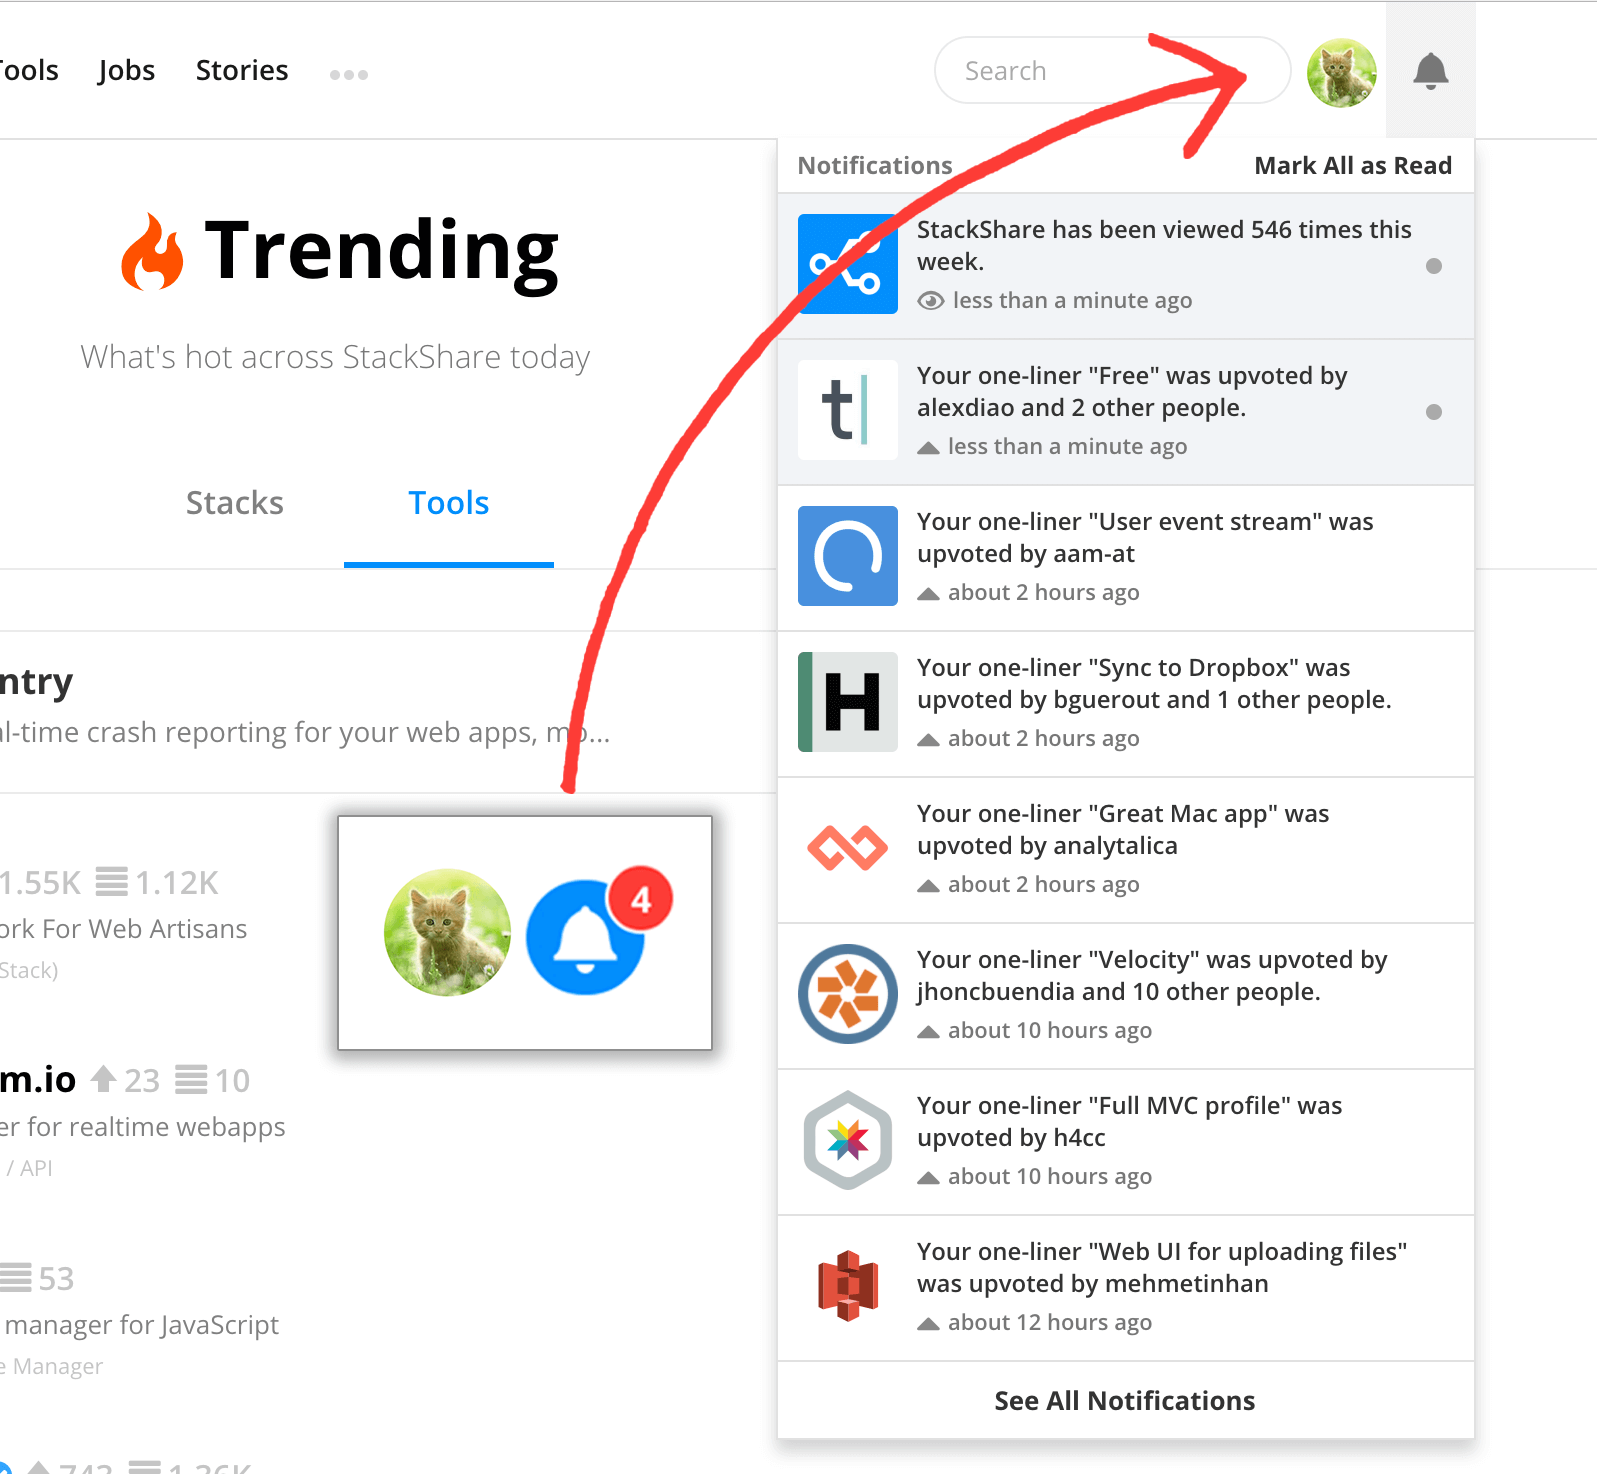 Product Update: Introducing Notifications Center